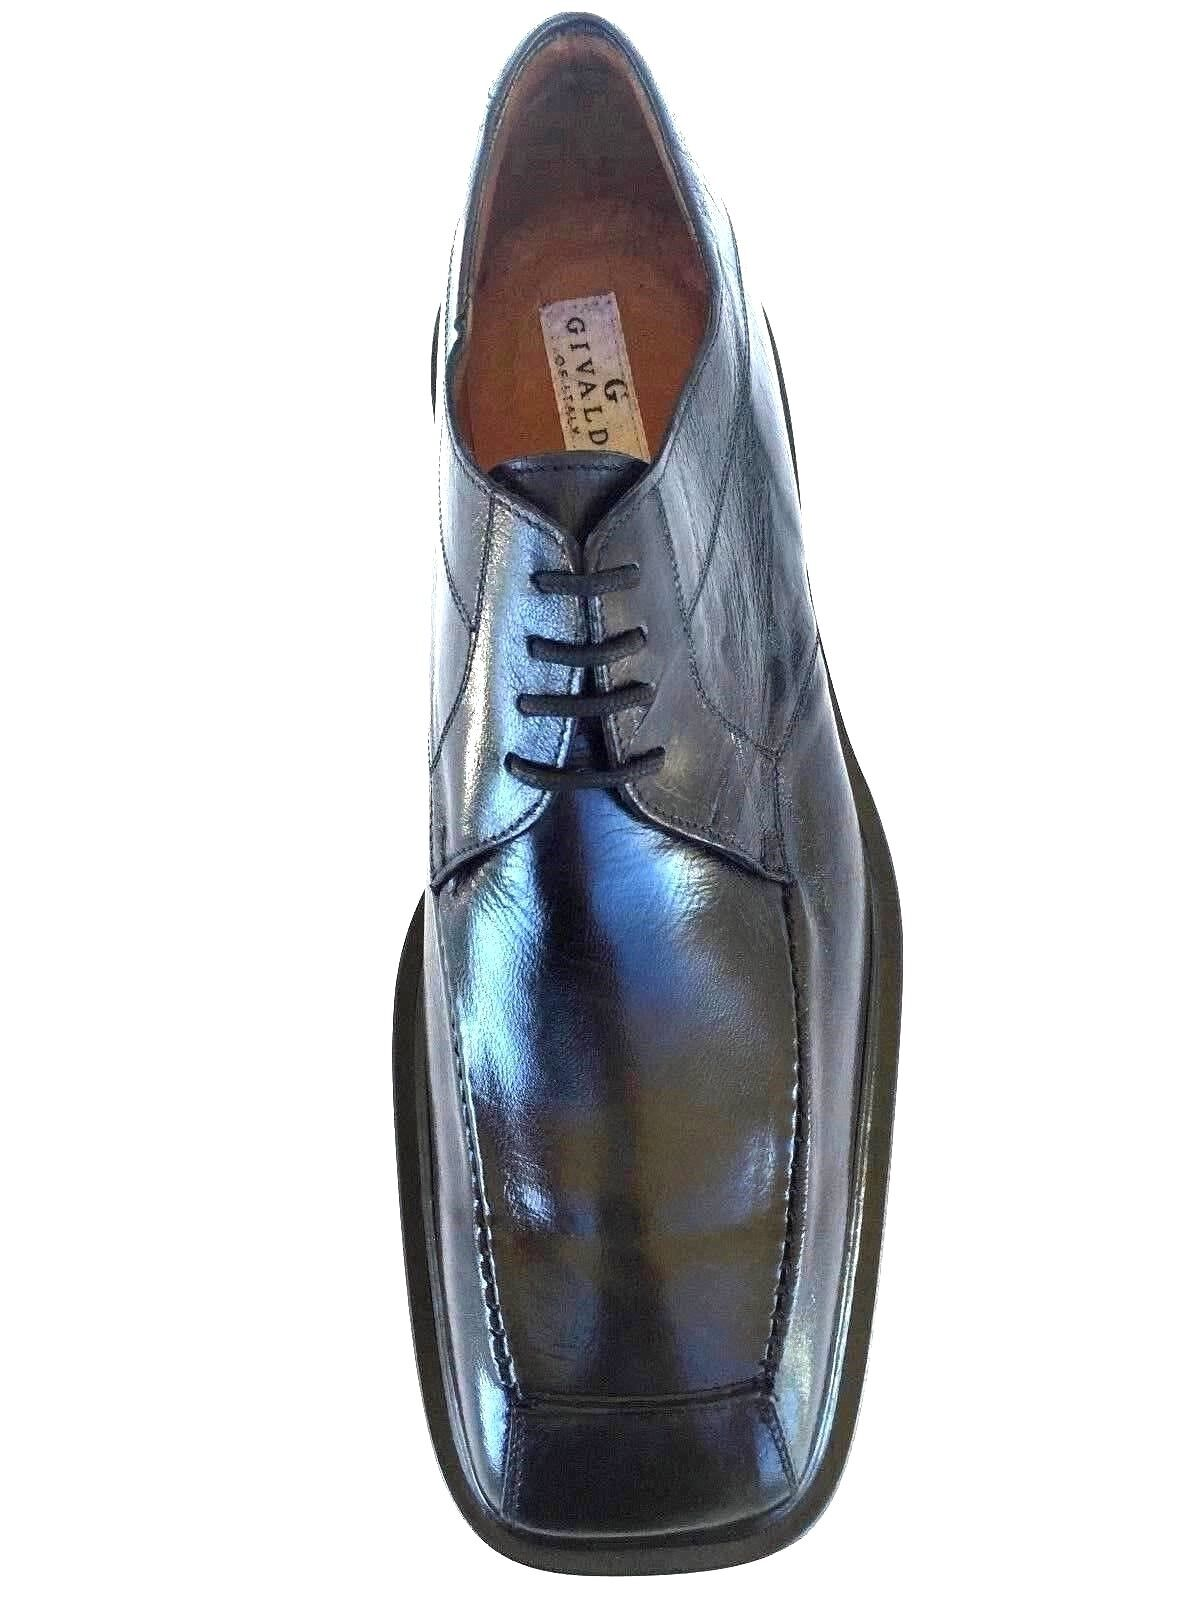 MEN'S ITALIAN SHOE LAM SKIN  ALL FULLY LEATHER COMFORTABLE,BY, GIVALDI -7970